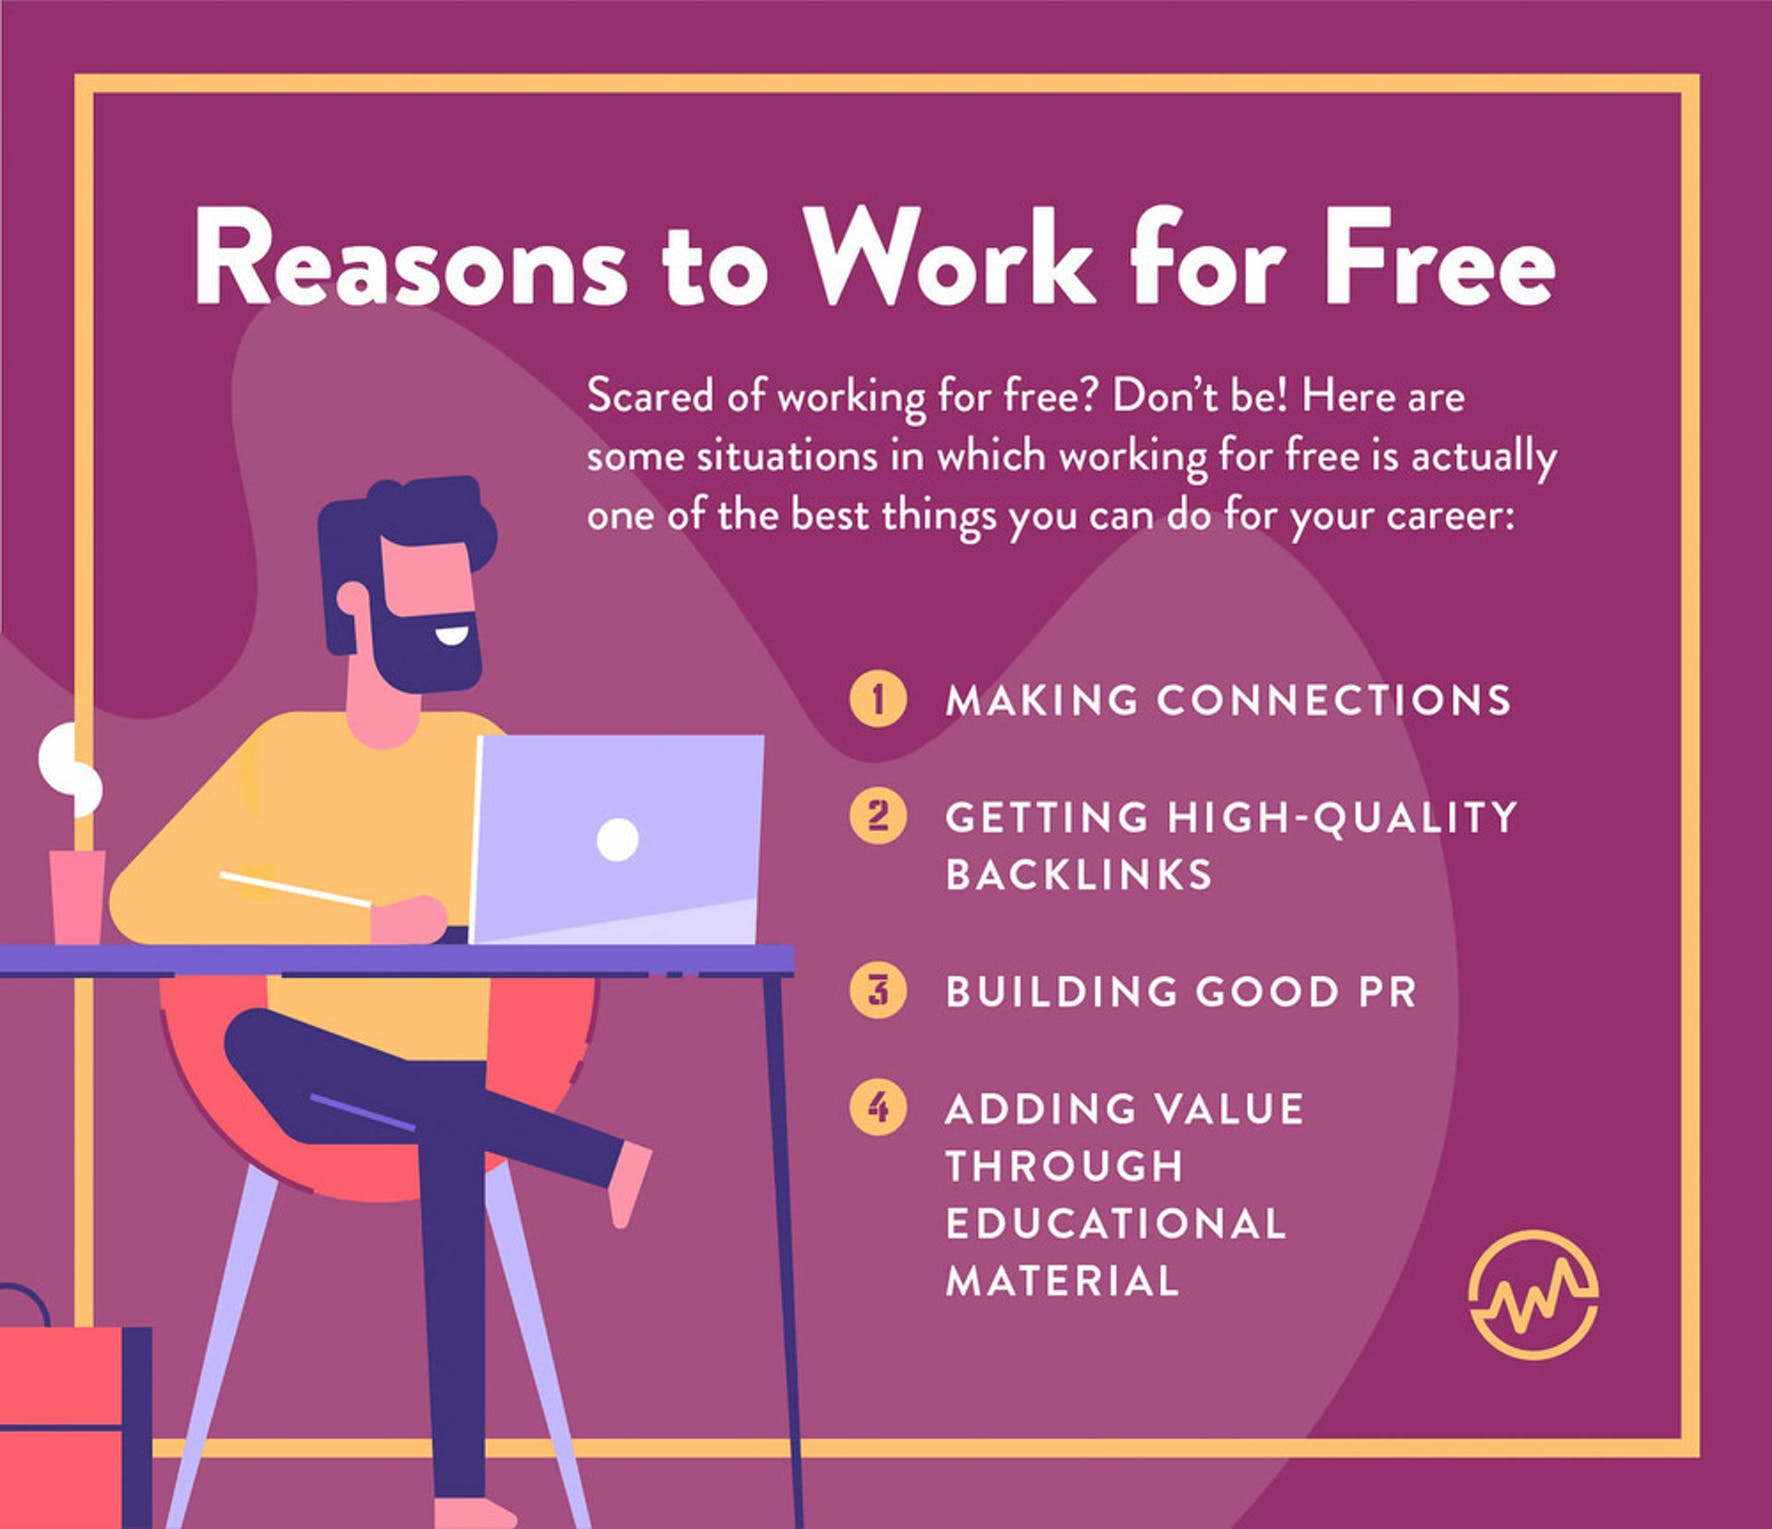 reasons to work for free: making connections, getting high-quality backlinks, building good PR, adding value through educational material